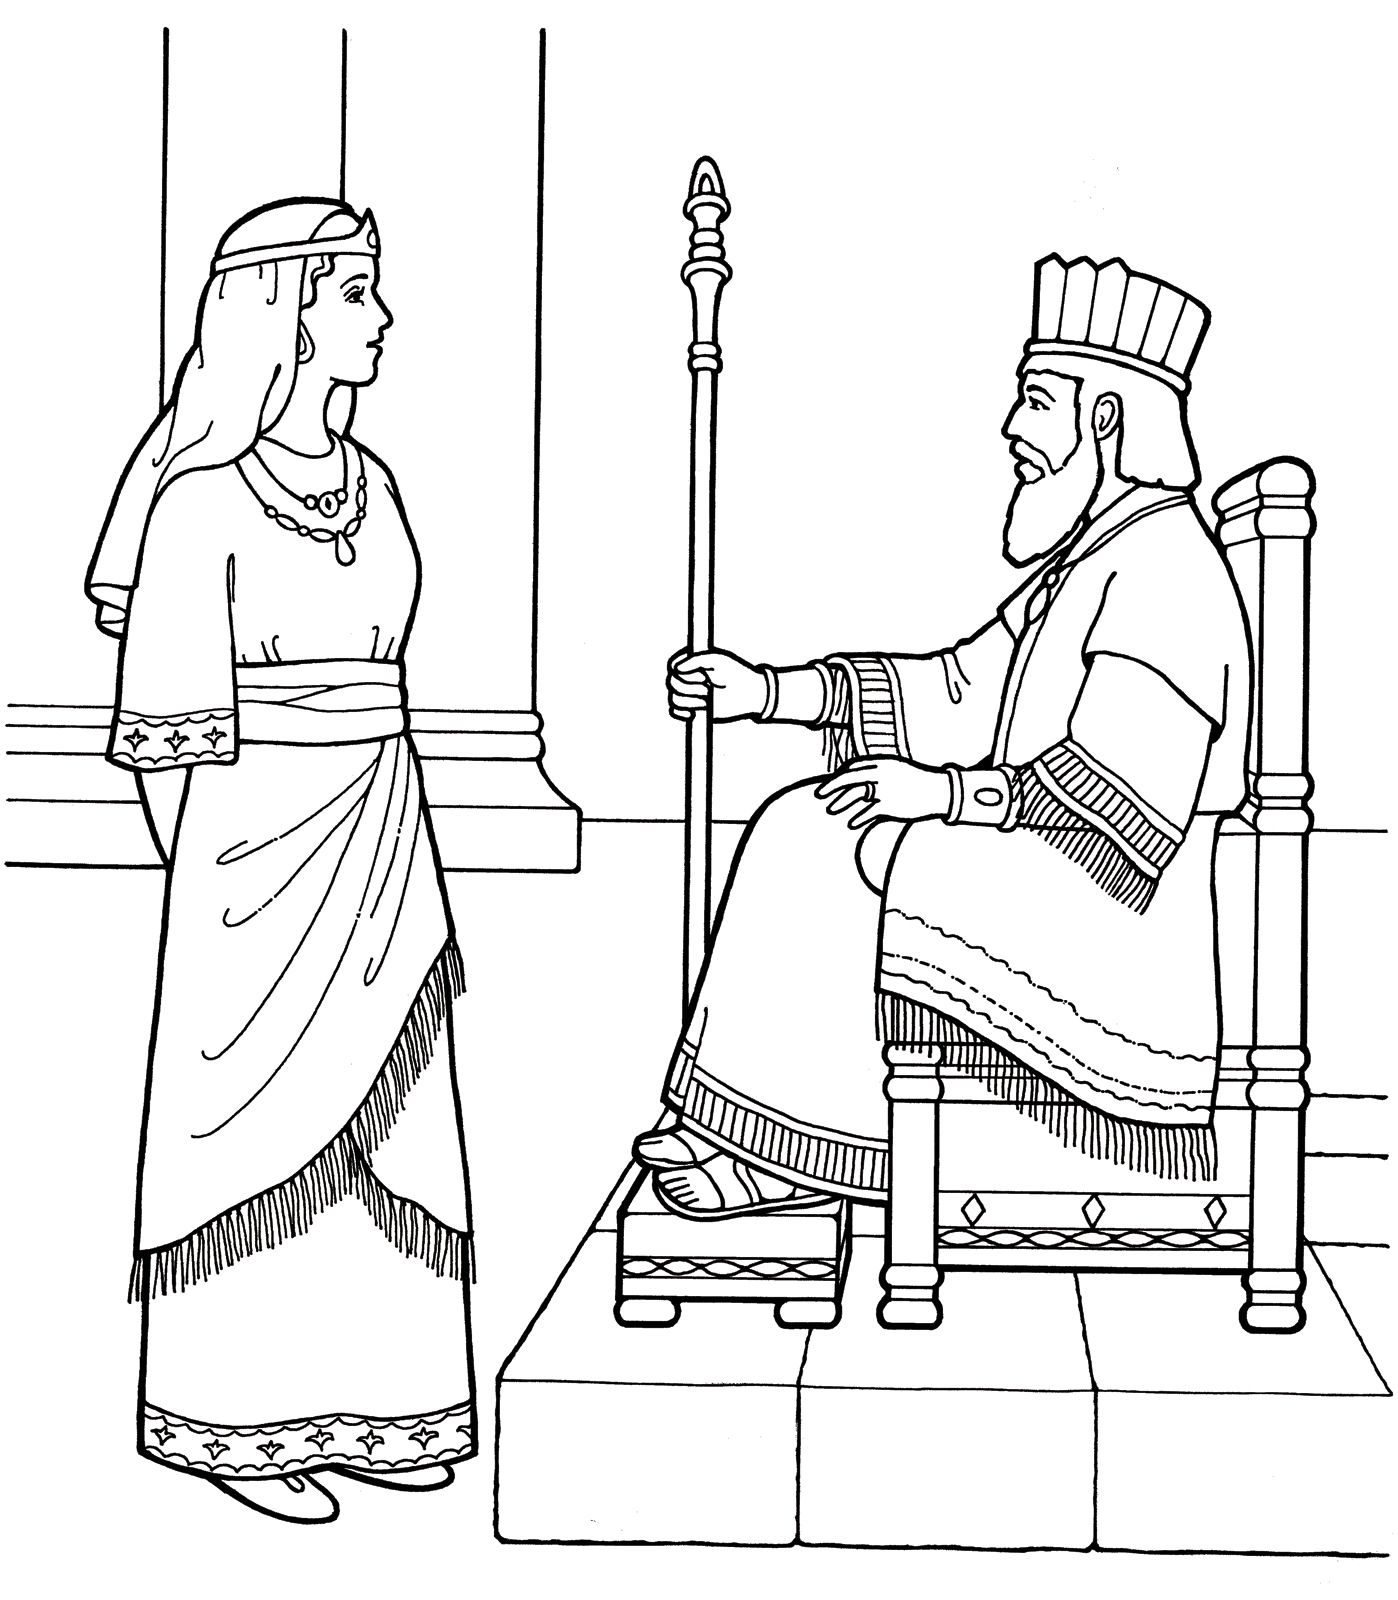 Printable coloring pages of queen esther - An Lds Primary Coloring Page From Lds Org Queen Esther With The King